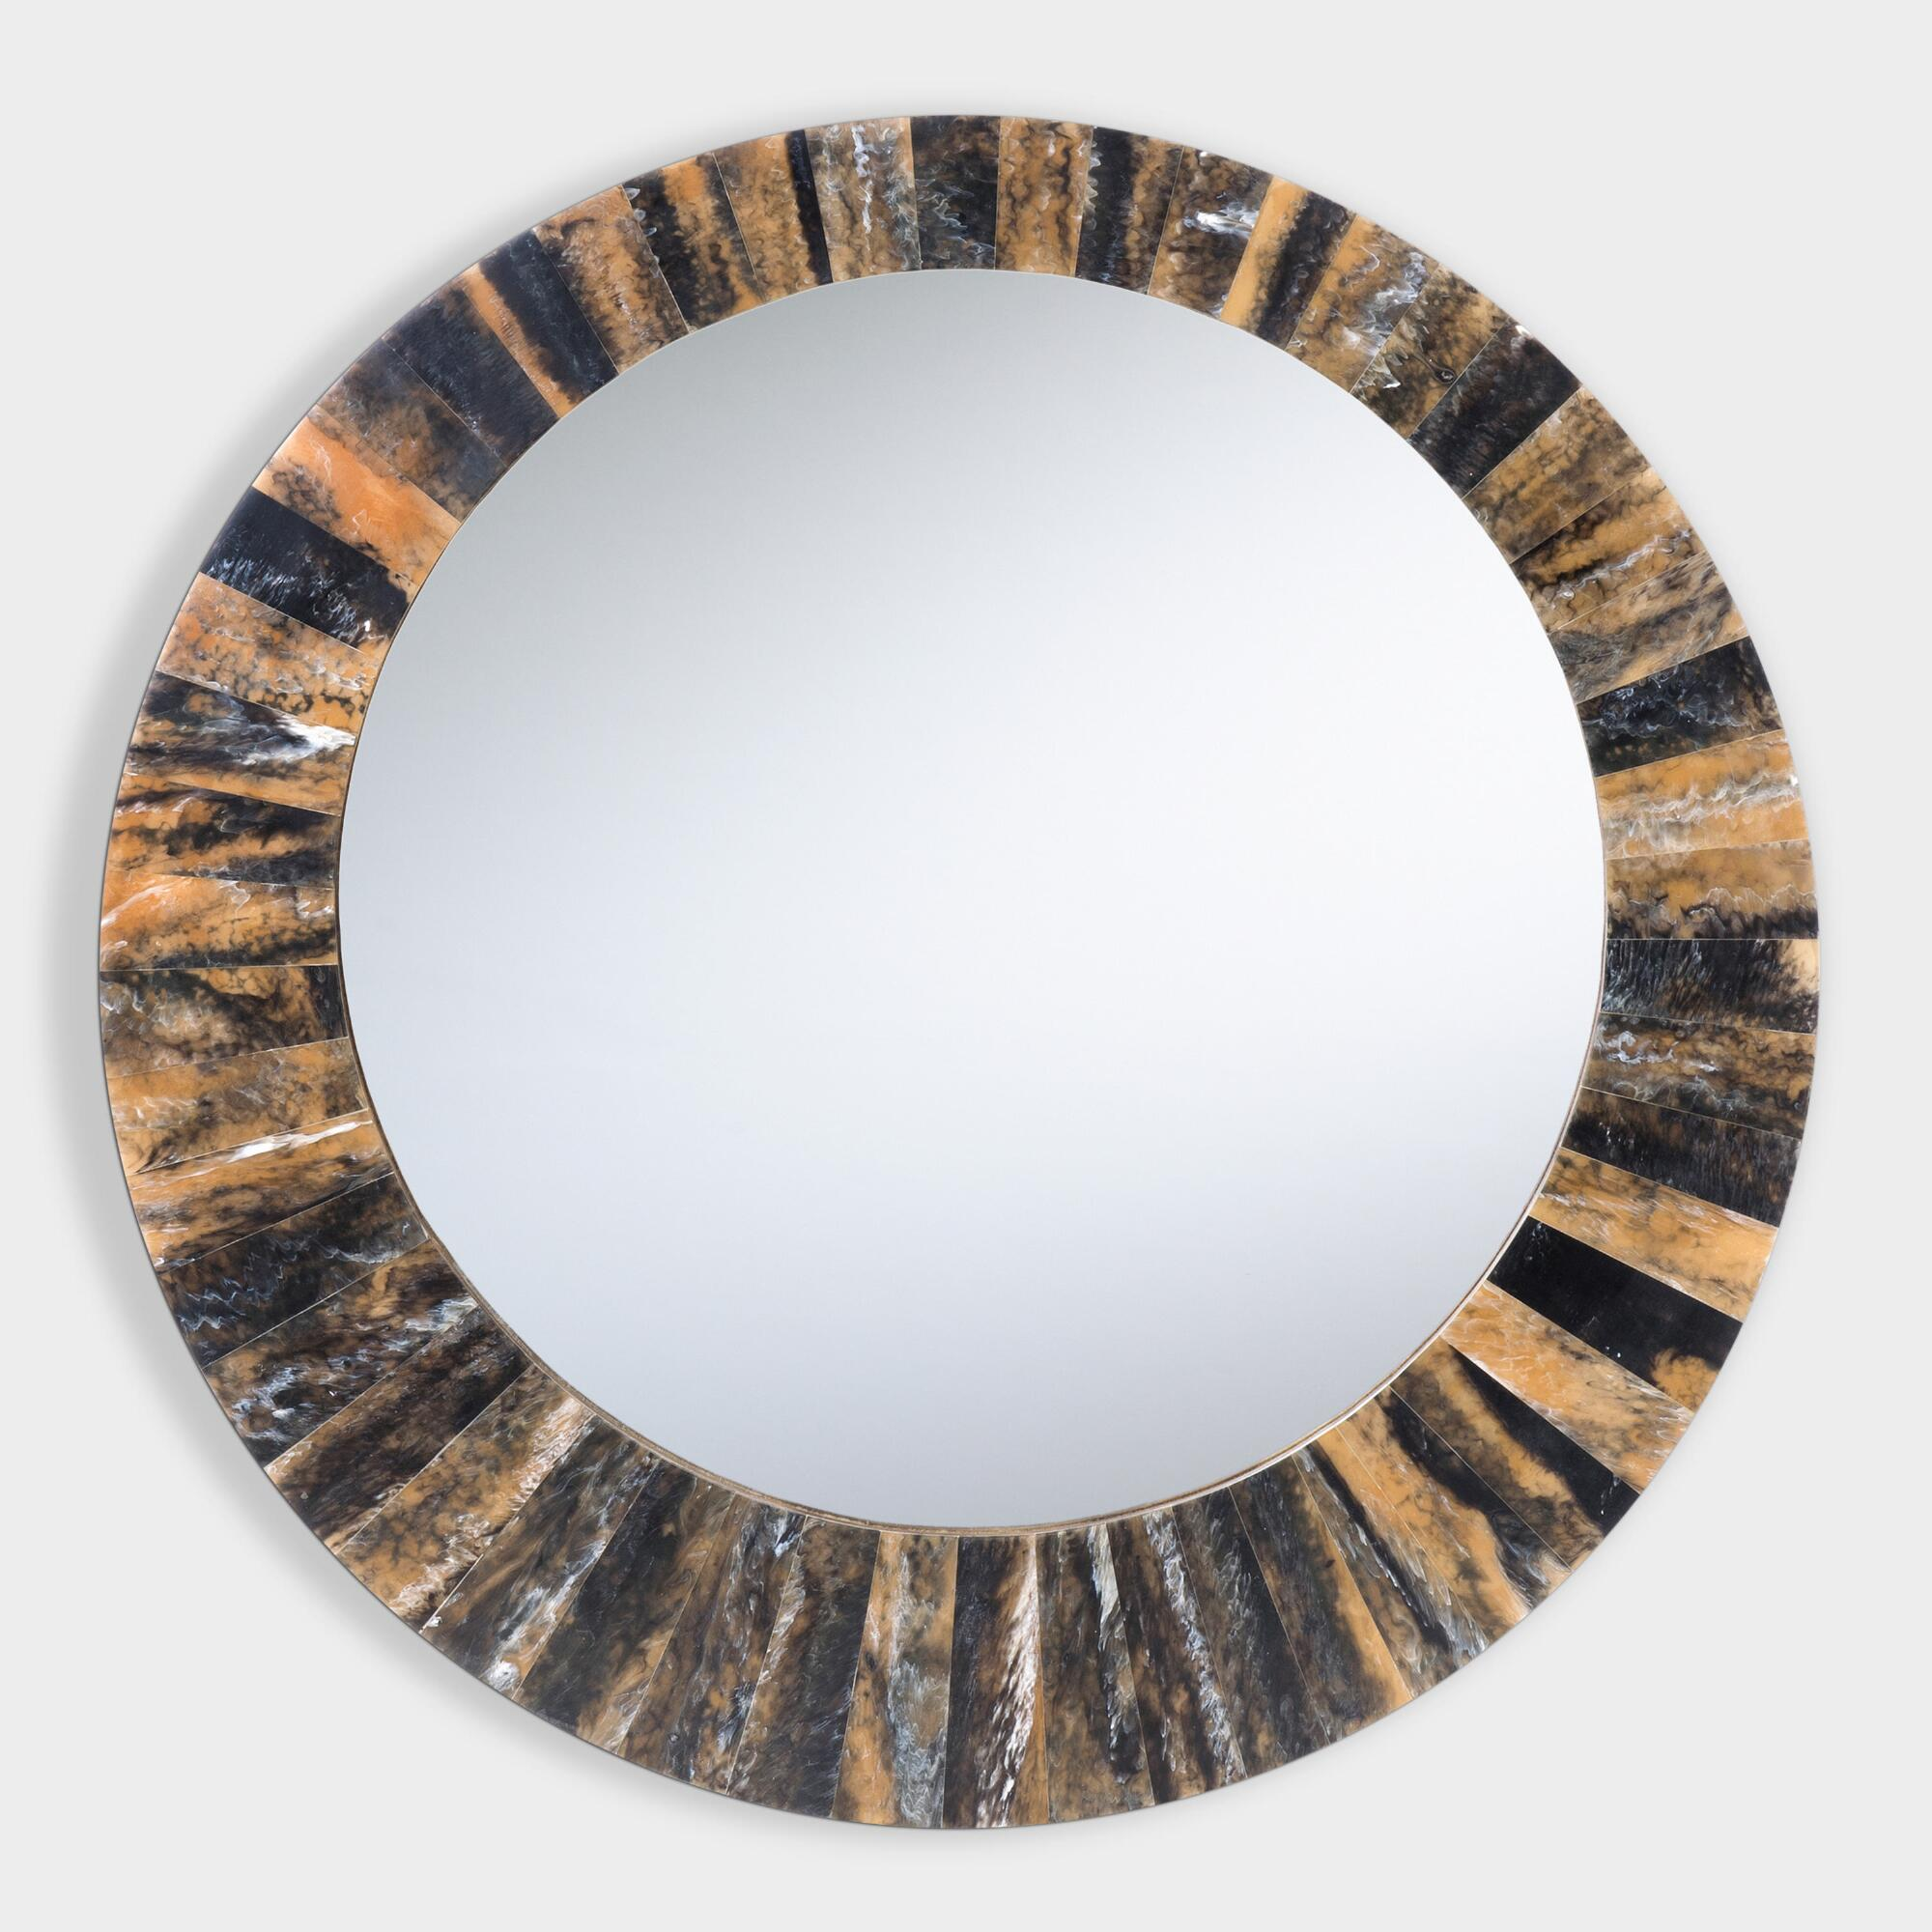 in bevel decor decoration oval circle fleurdelissf odelia mirror wonderland rc your snob nickel sterling mirrors bathroom brushed design and flossy high lights tempting